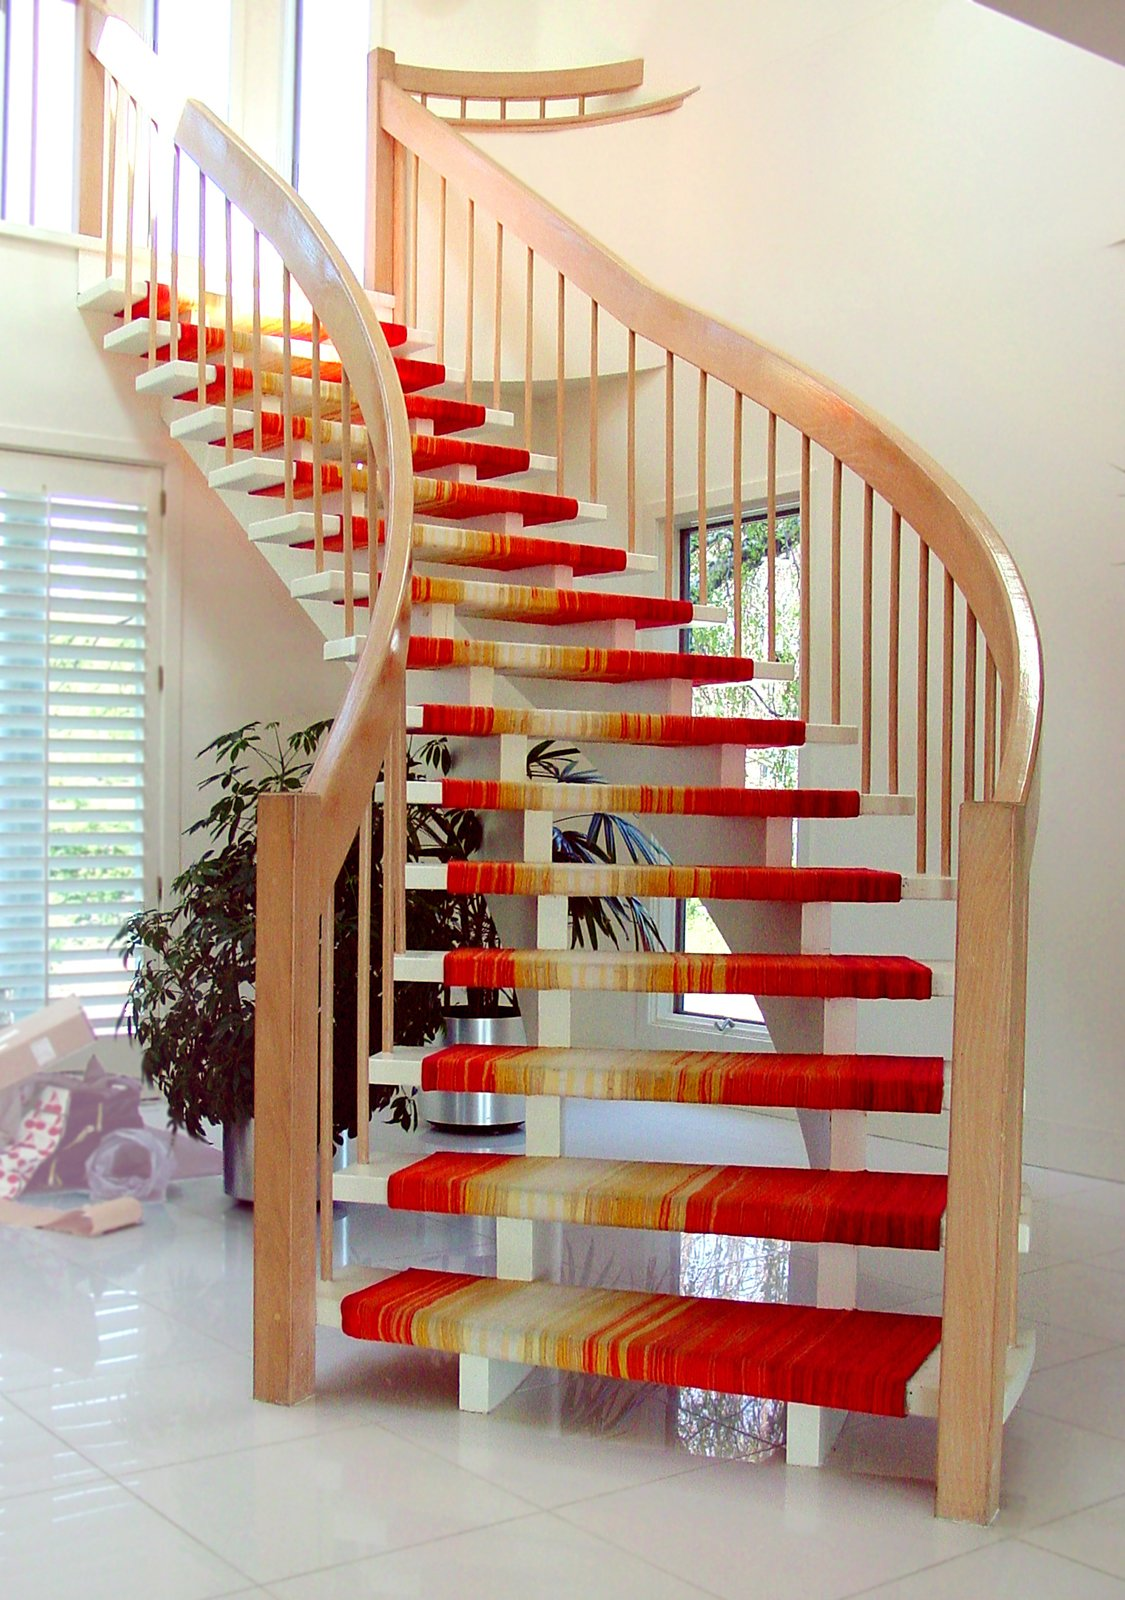 A fabric covered wooden staircase.  Photo 2 of 4 in A Chat with Designer Liora Manné